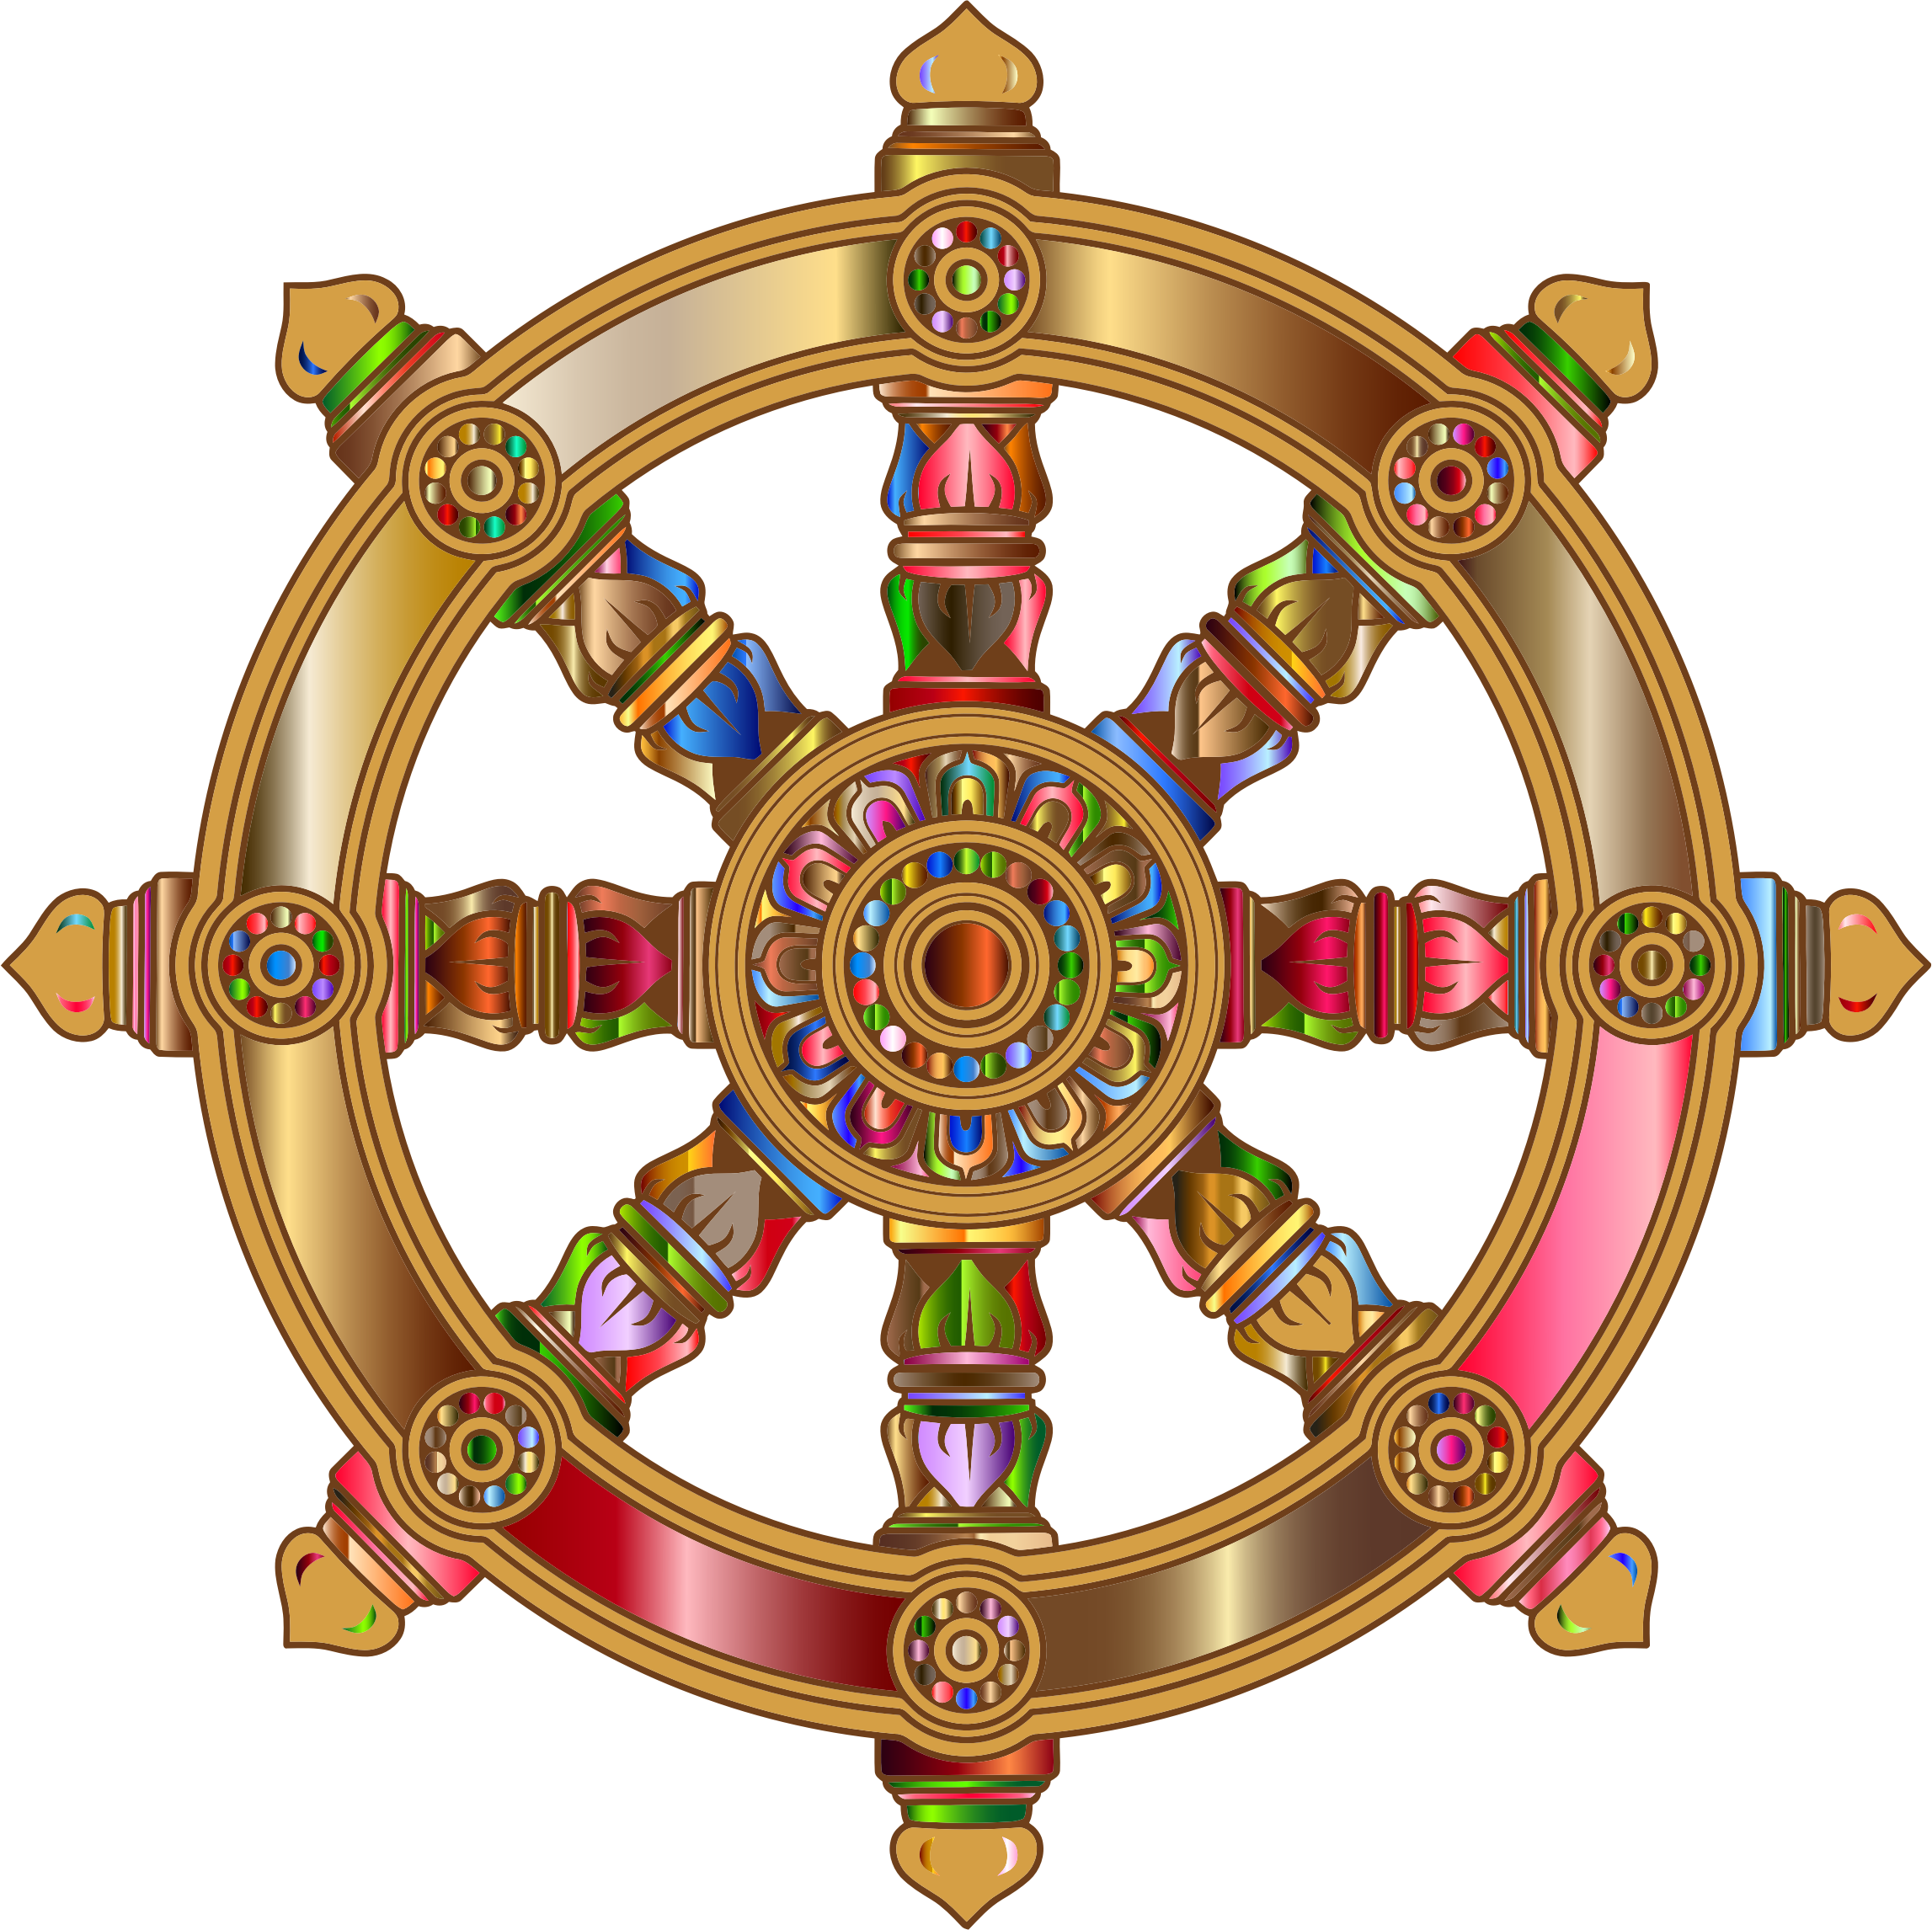 Prismatic Ornate Dharma Wheel 4 by GDJ